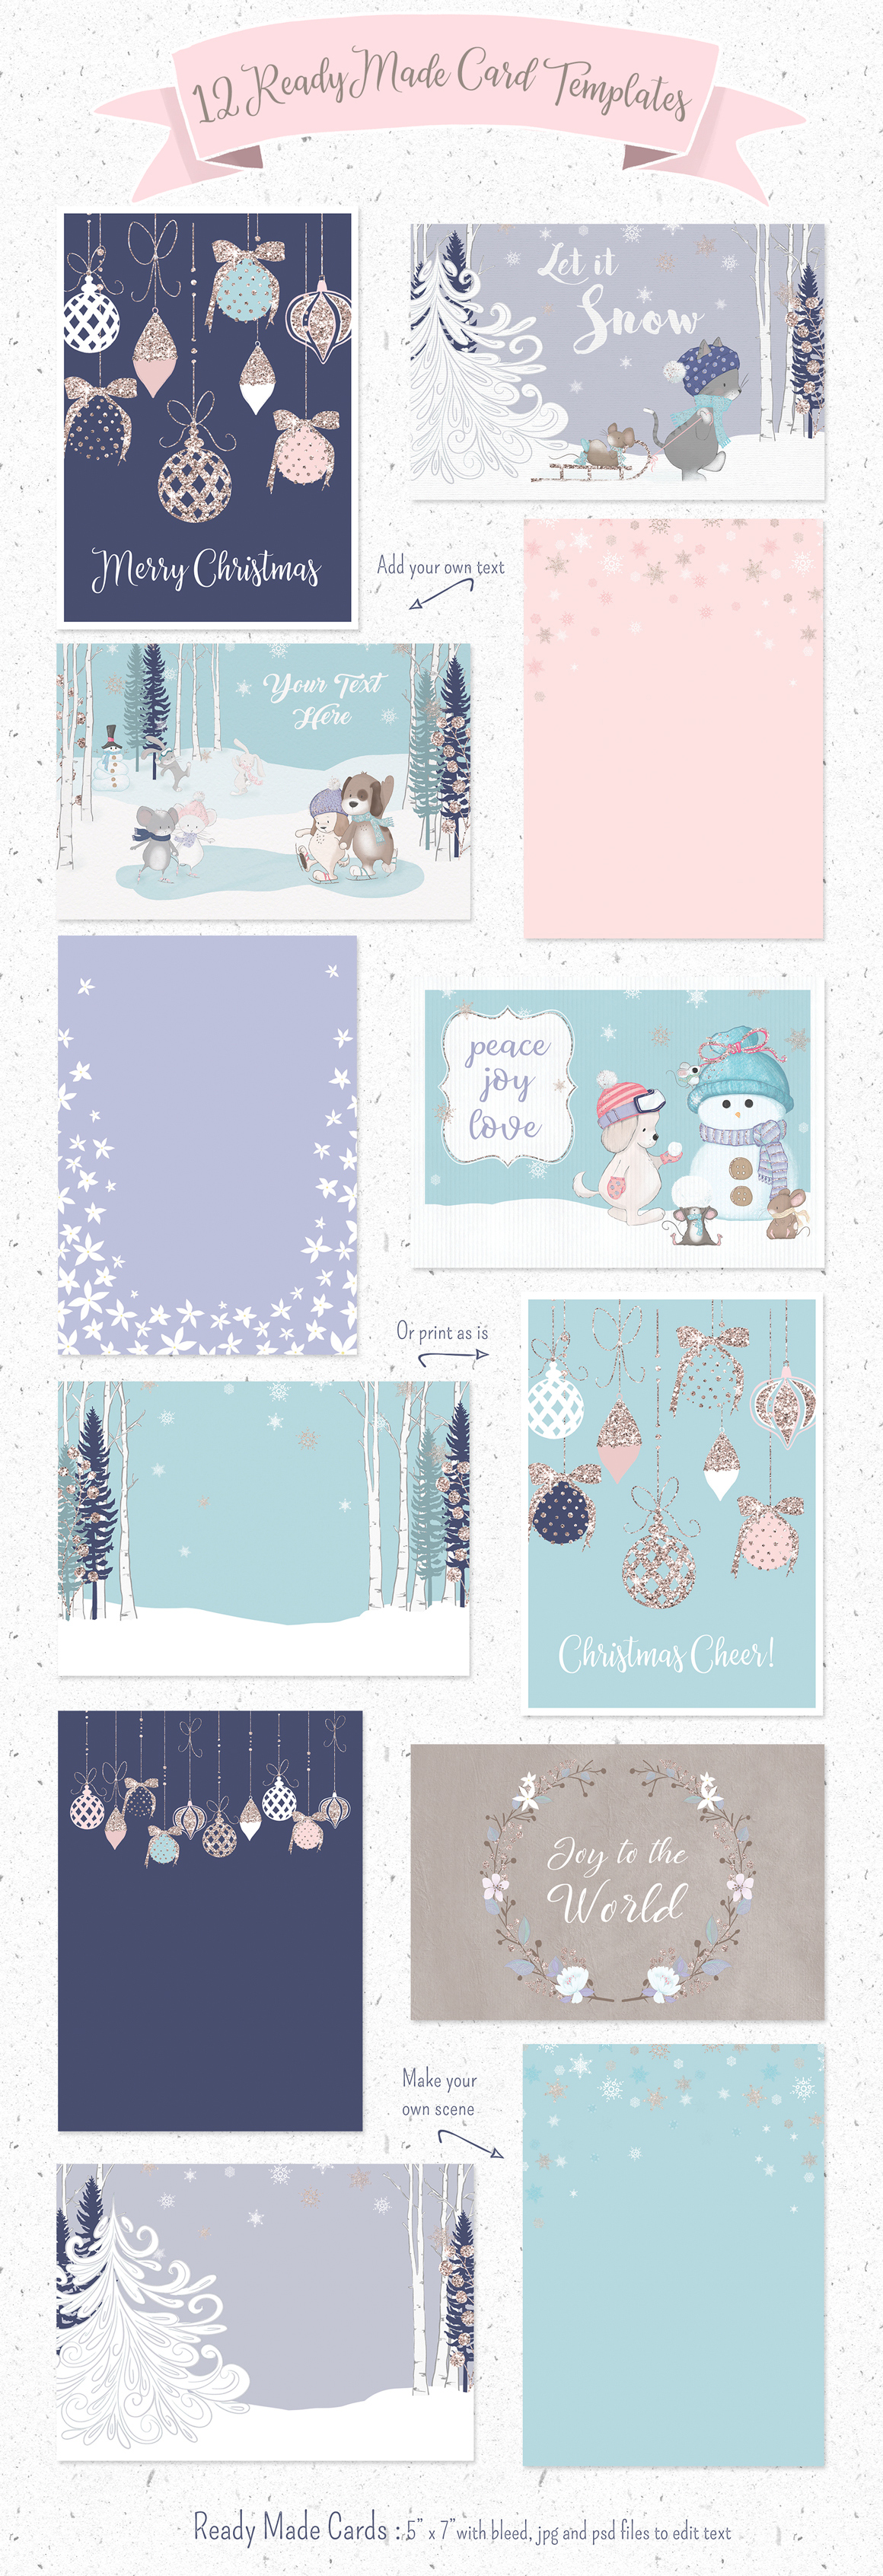 Winter Whimsy Clipart Collection example image 3